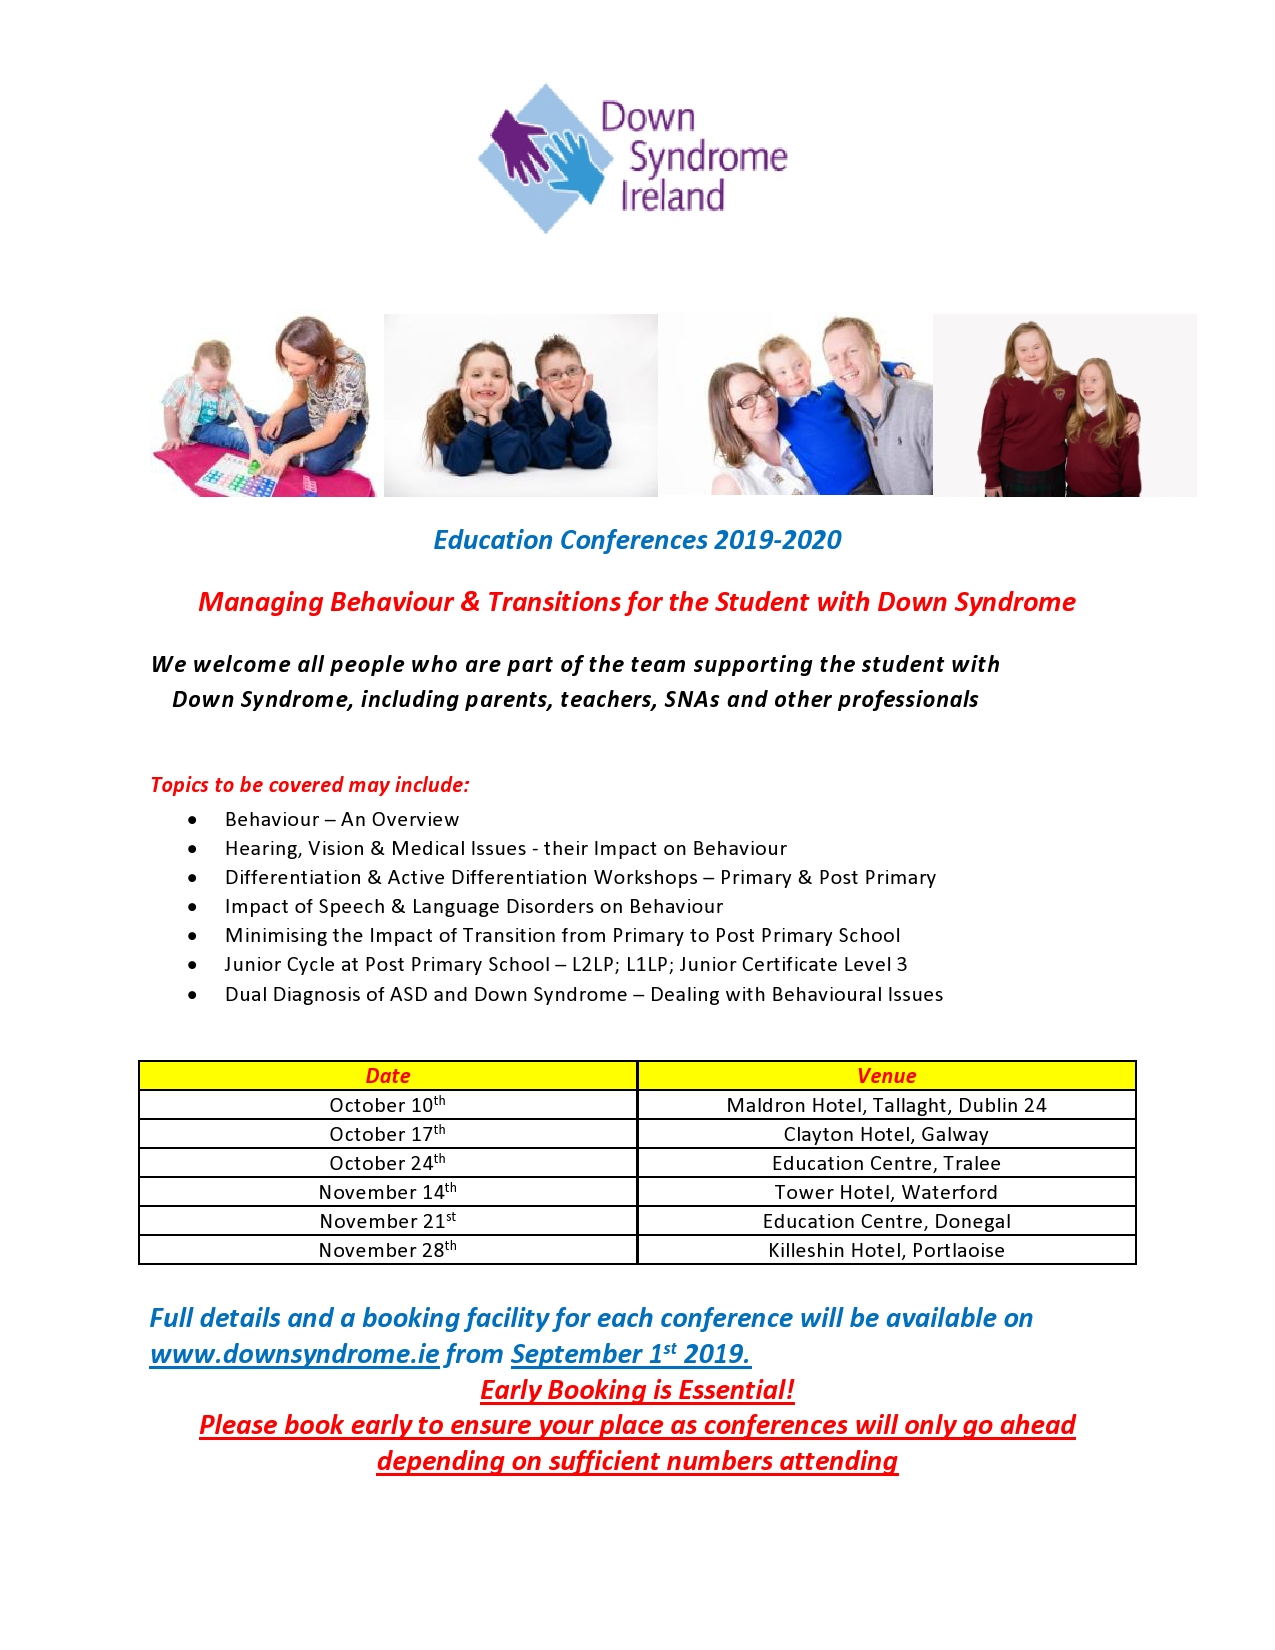 Education Conference 2019/2020 – Down Syndrome Ireland